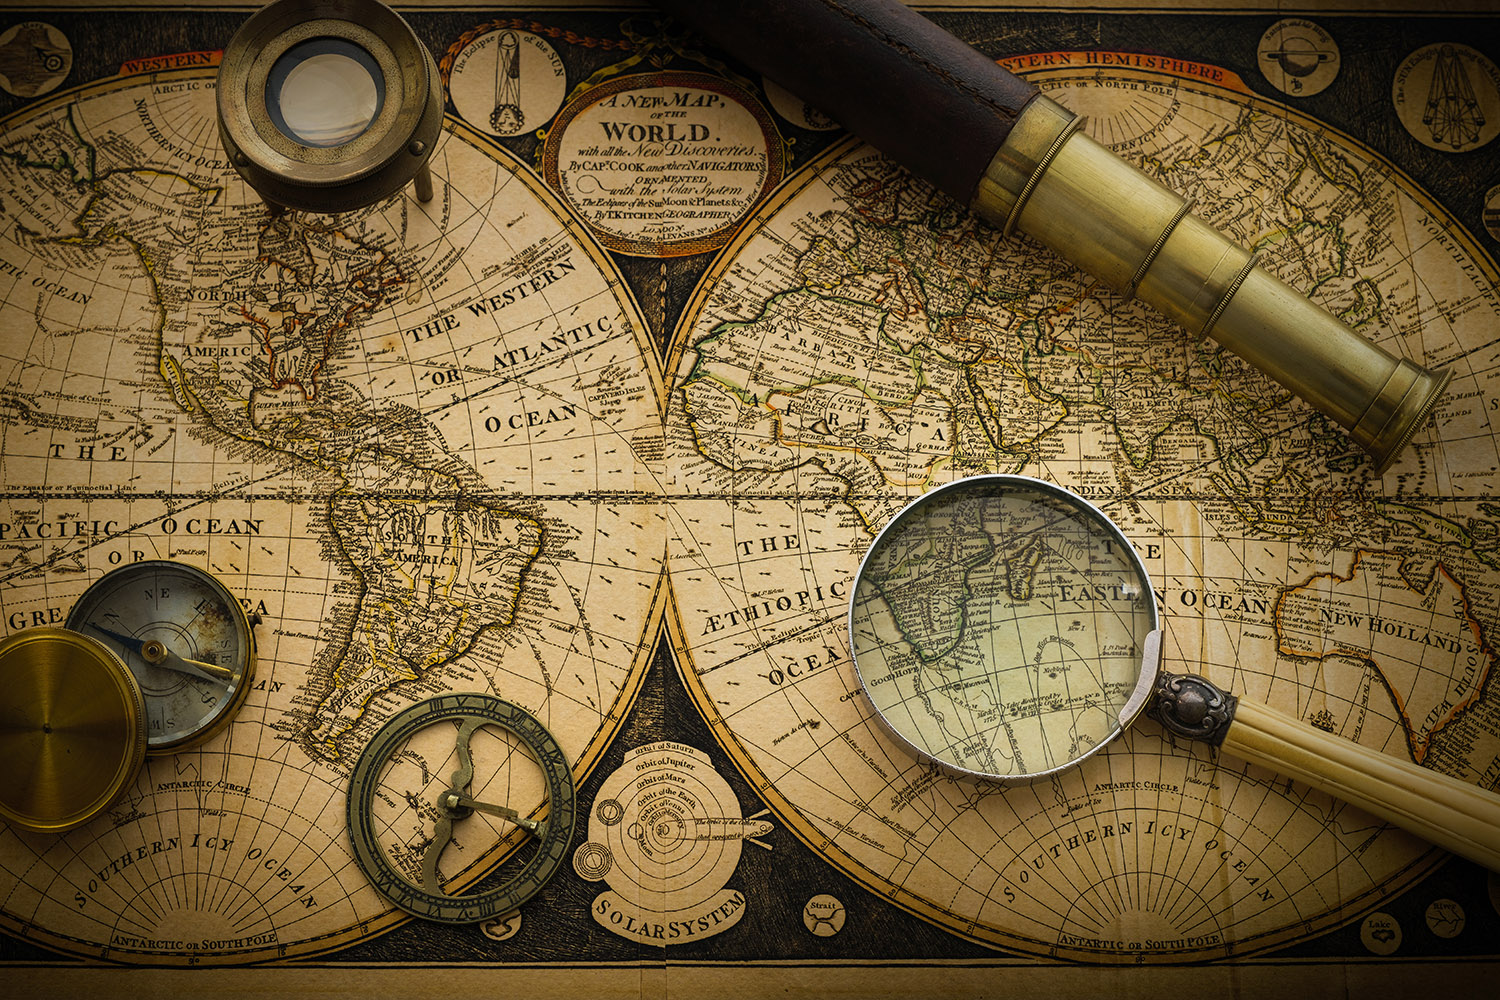 Free stock photo Antique world map with telescope, compass and magnifier